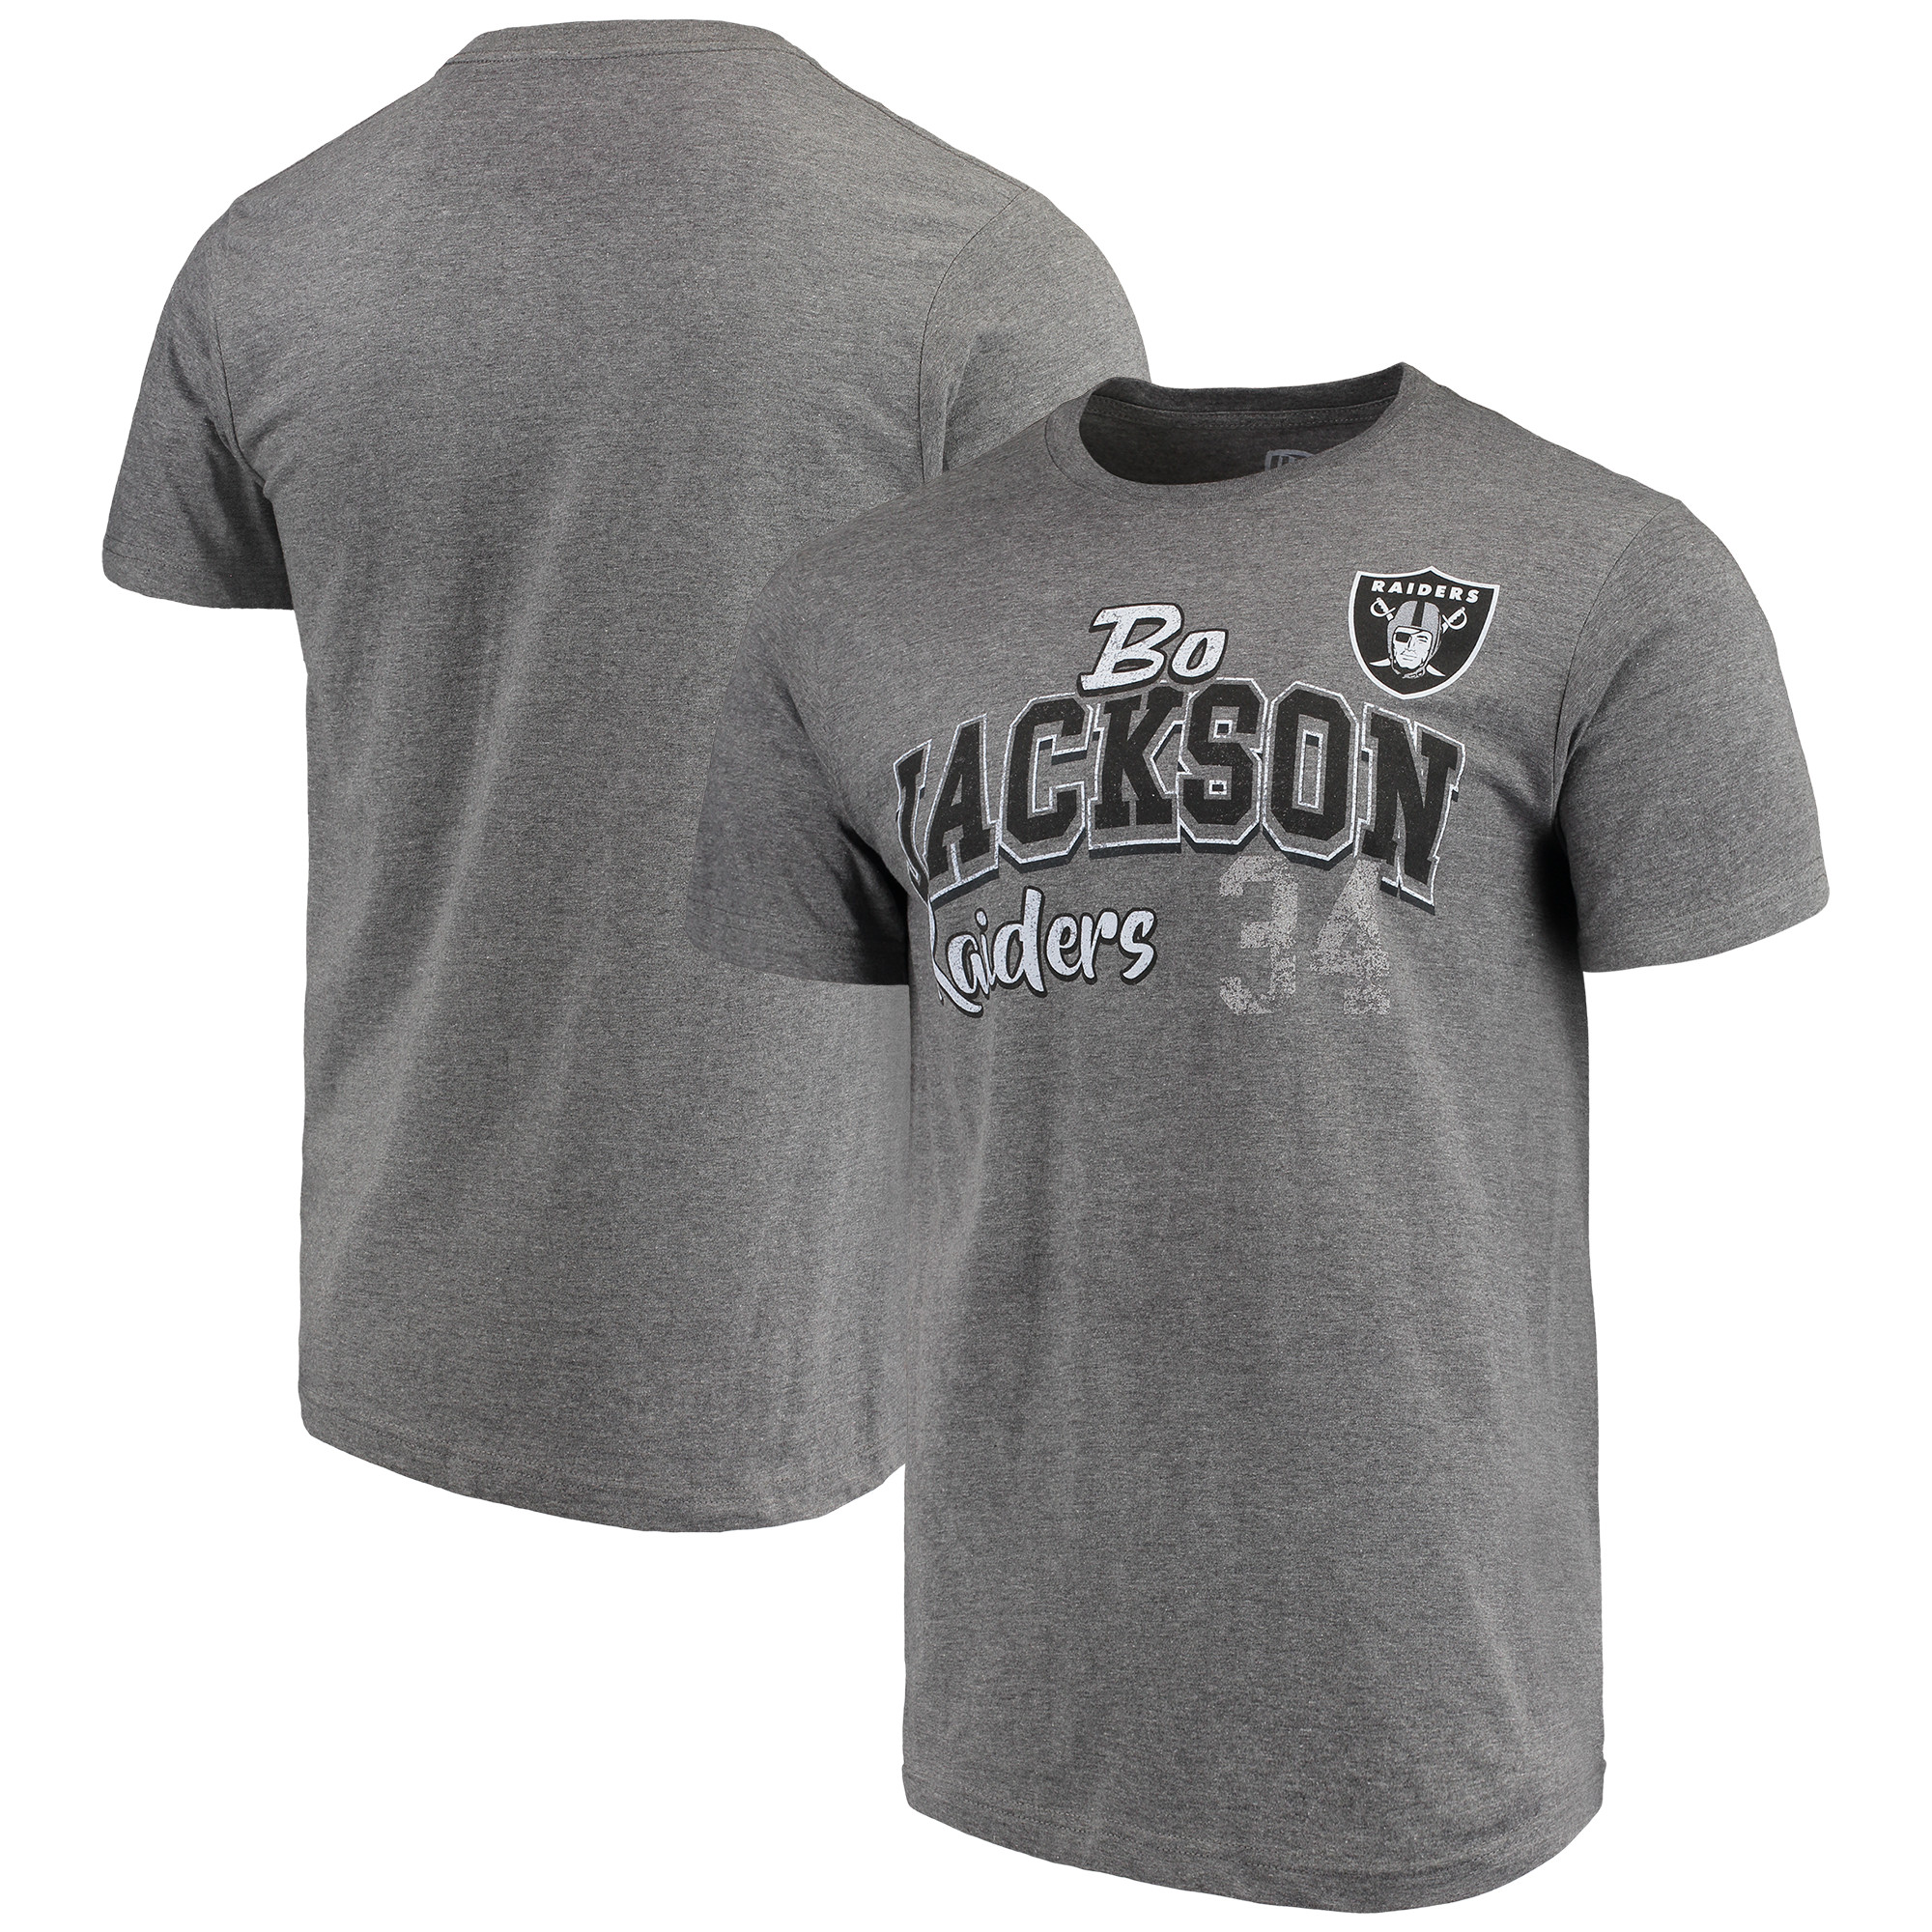 Bo Jackson Oakland Raiders G-III Sports by Carl Banks Primetime Player Name & Number - NFL Greats T-Shirt - Graphite